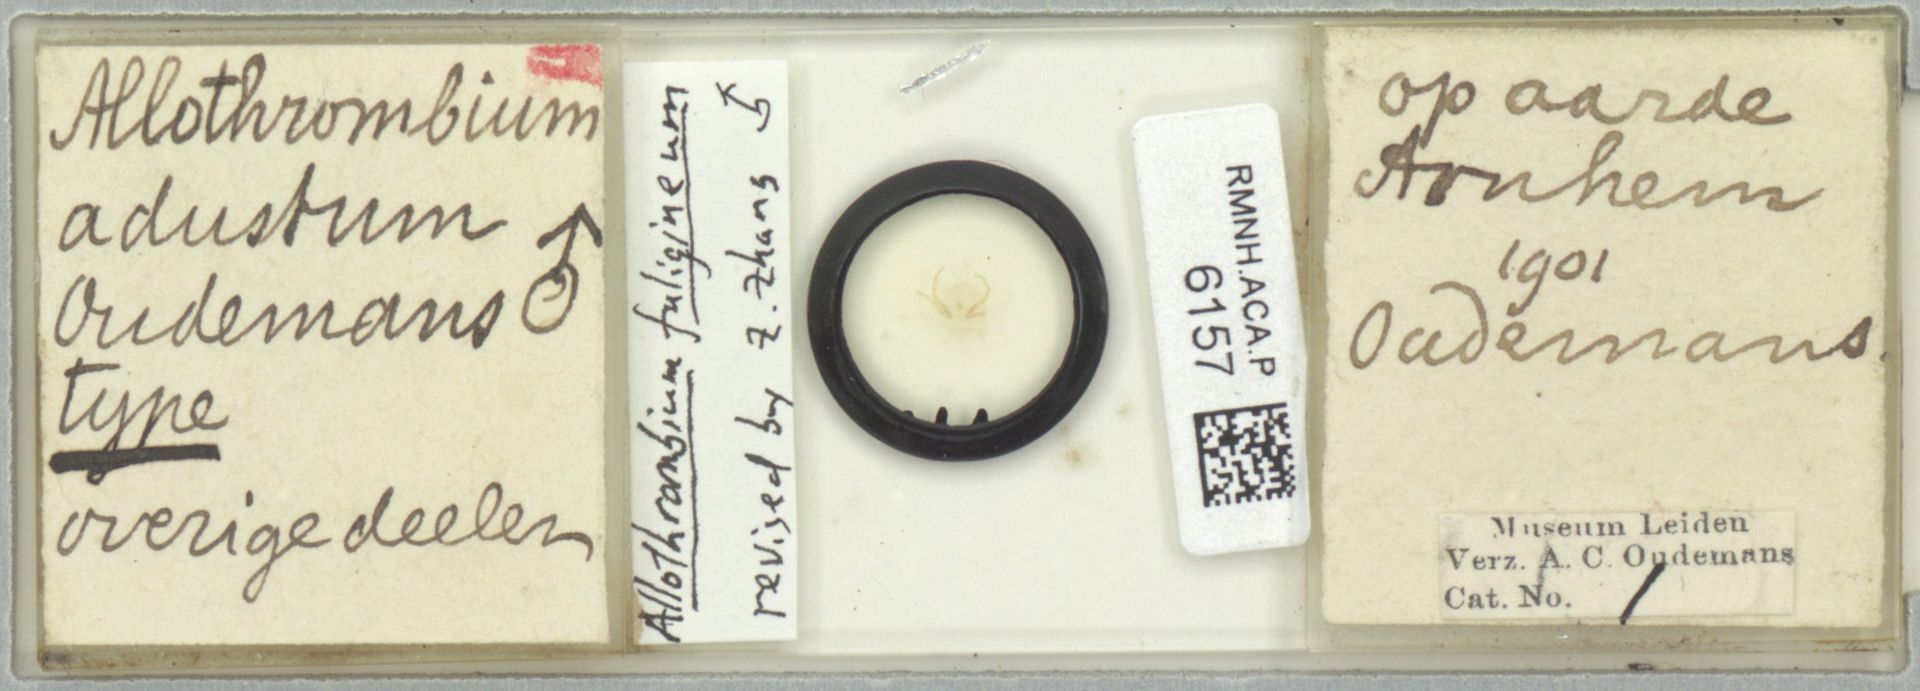 RMNH.ACA.P.6157 | Allothrombium fuligineum